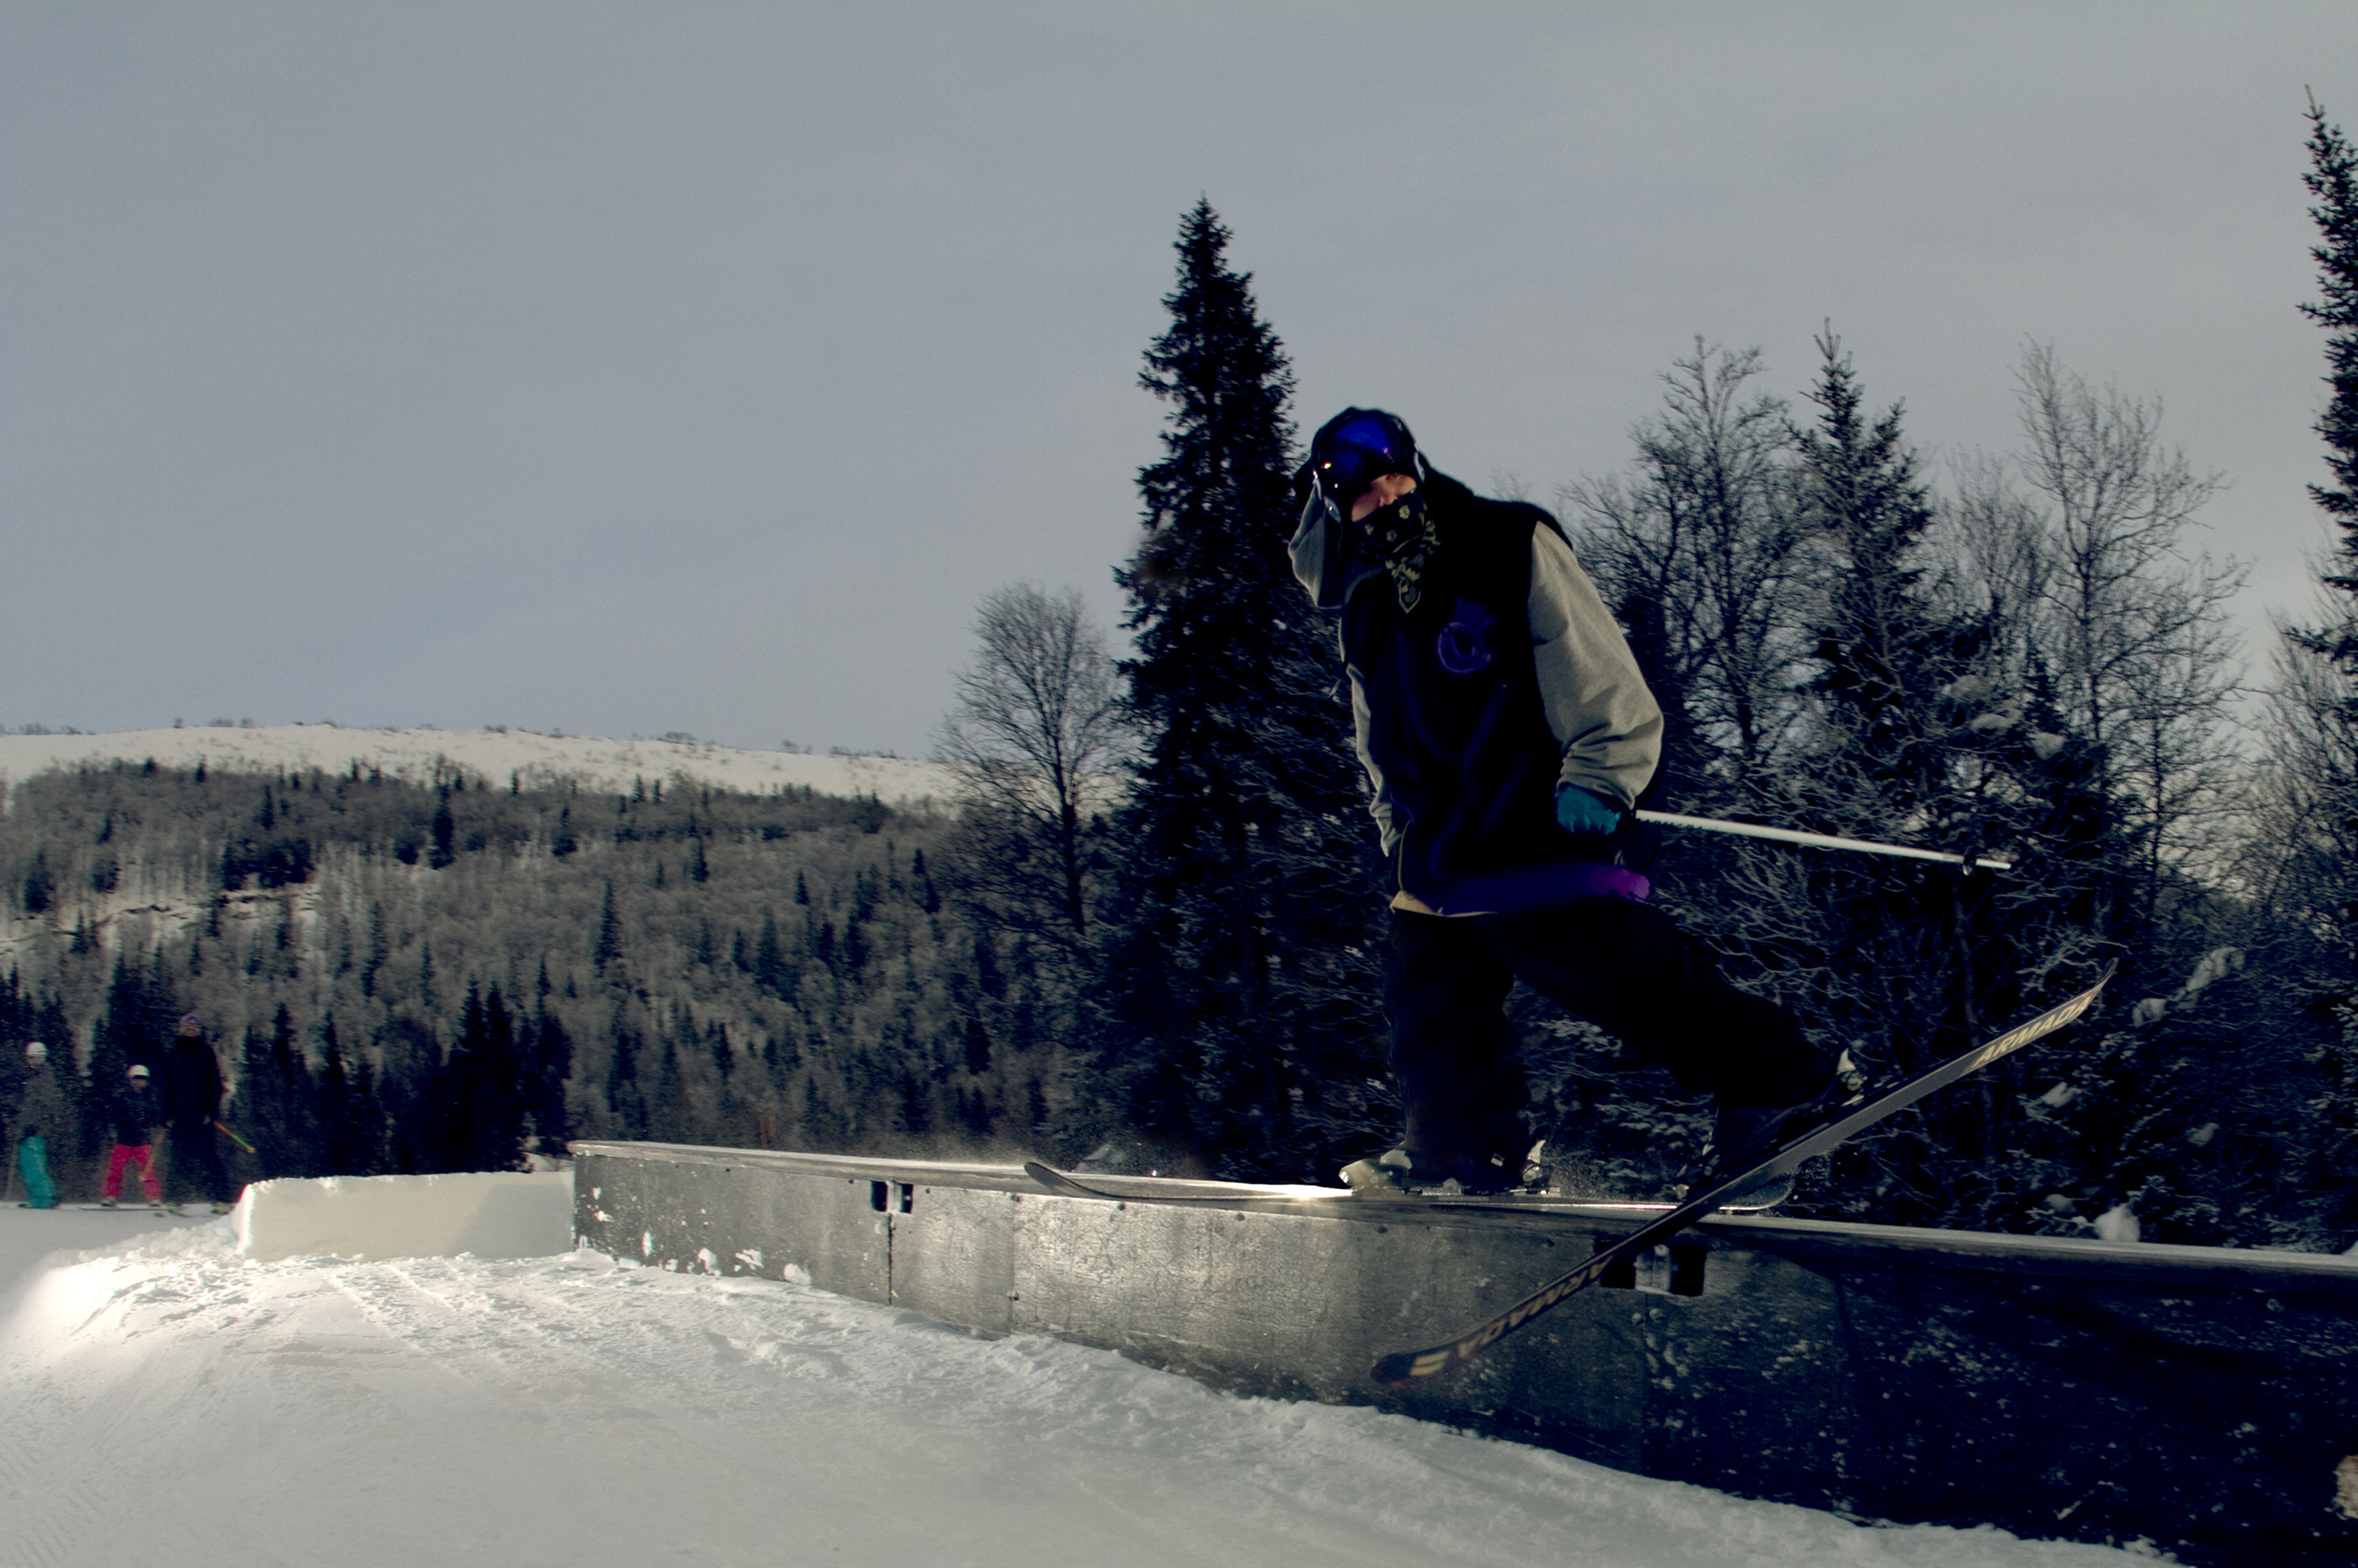 Rails at Are Sweden